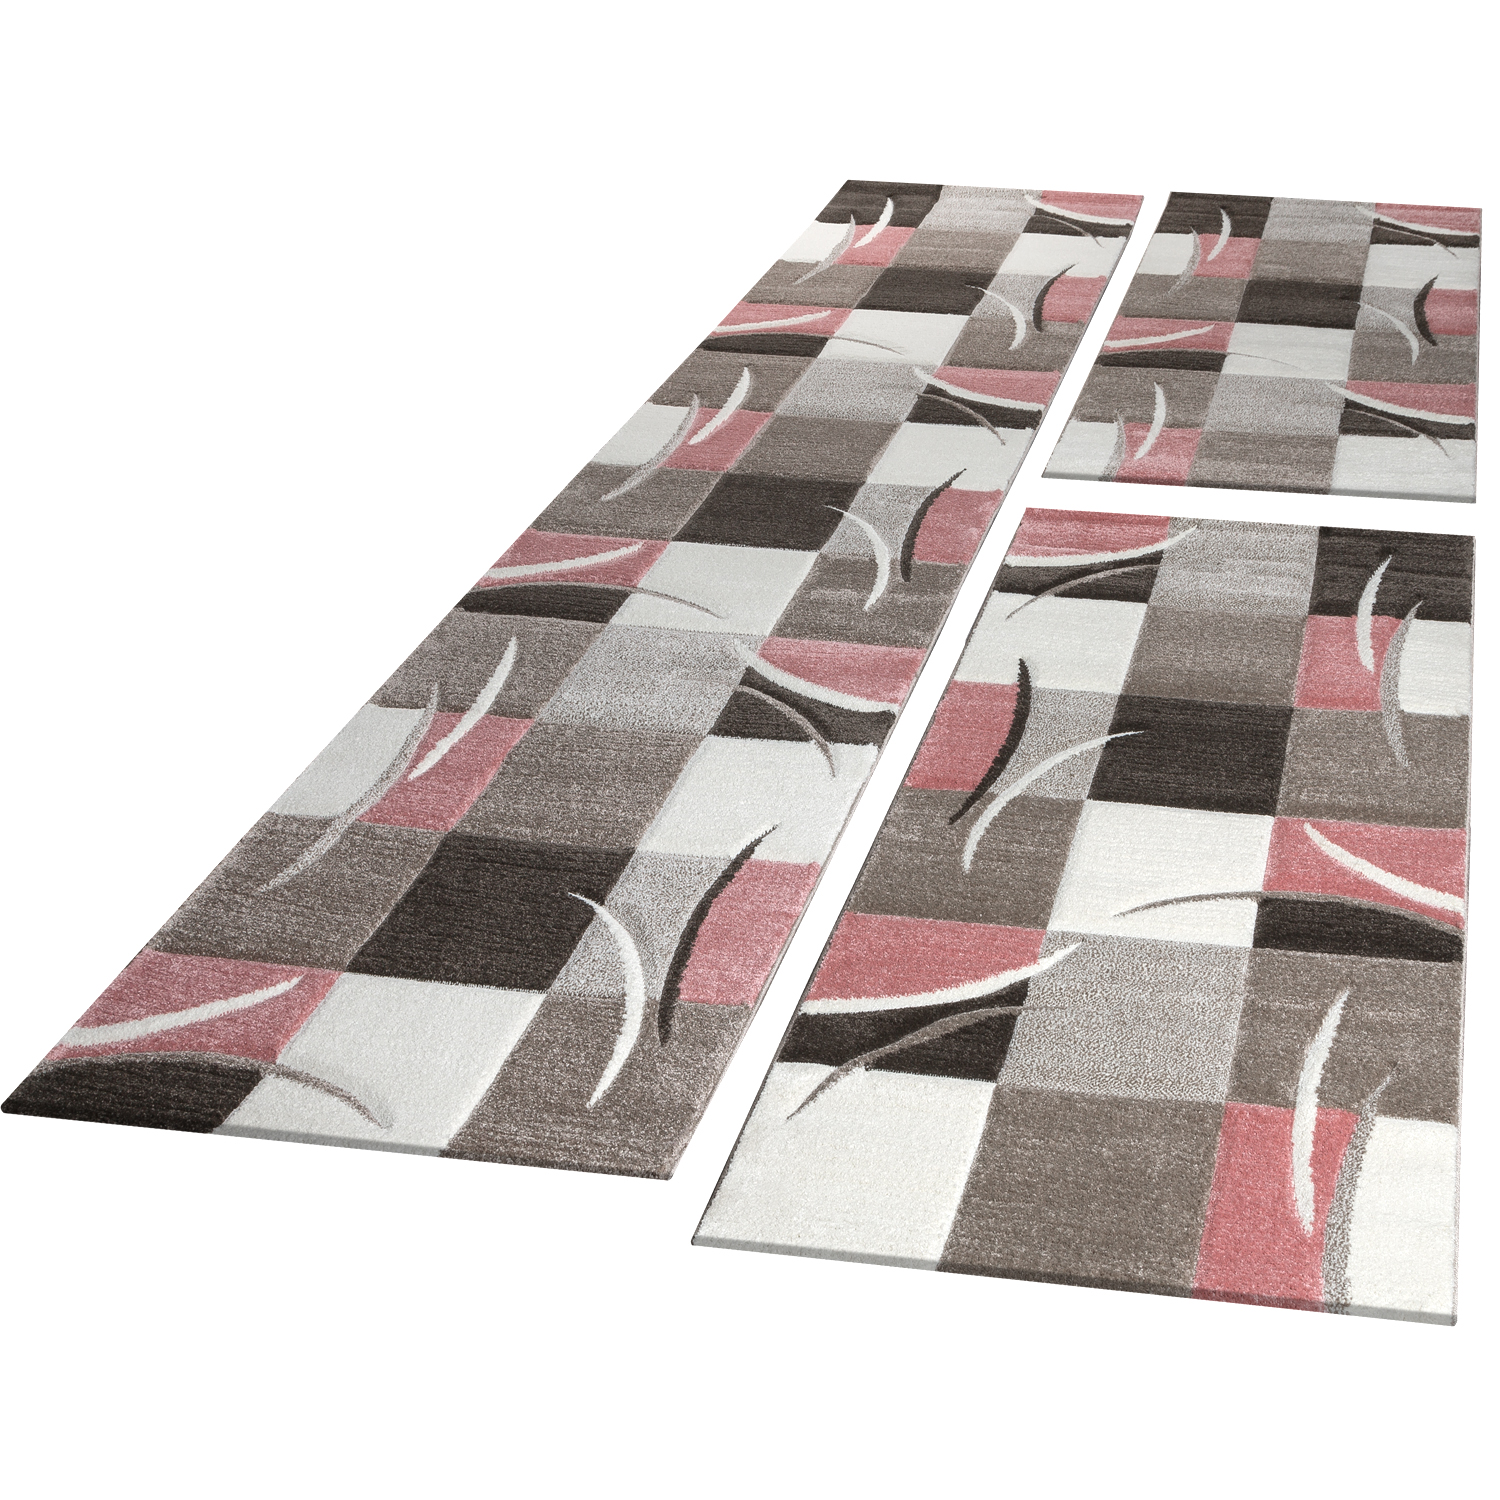 Bed Border Runners Rug Contour Cut Checked In Pink Beige Runner Set 3-Piece